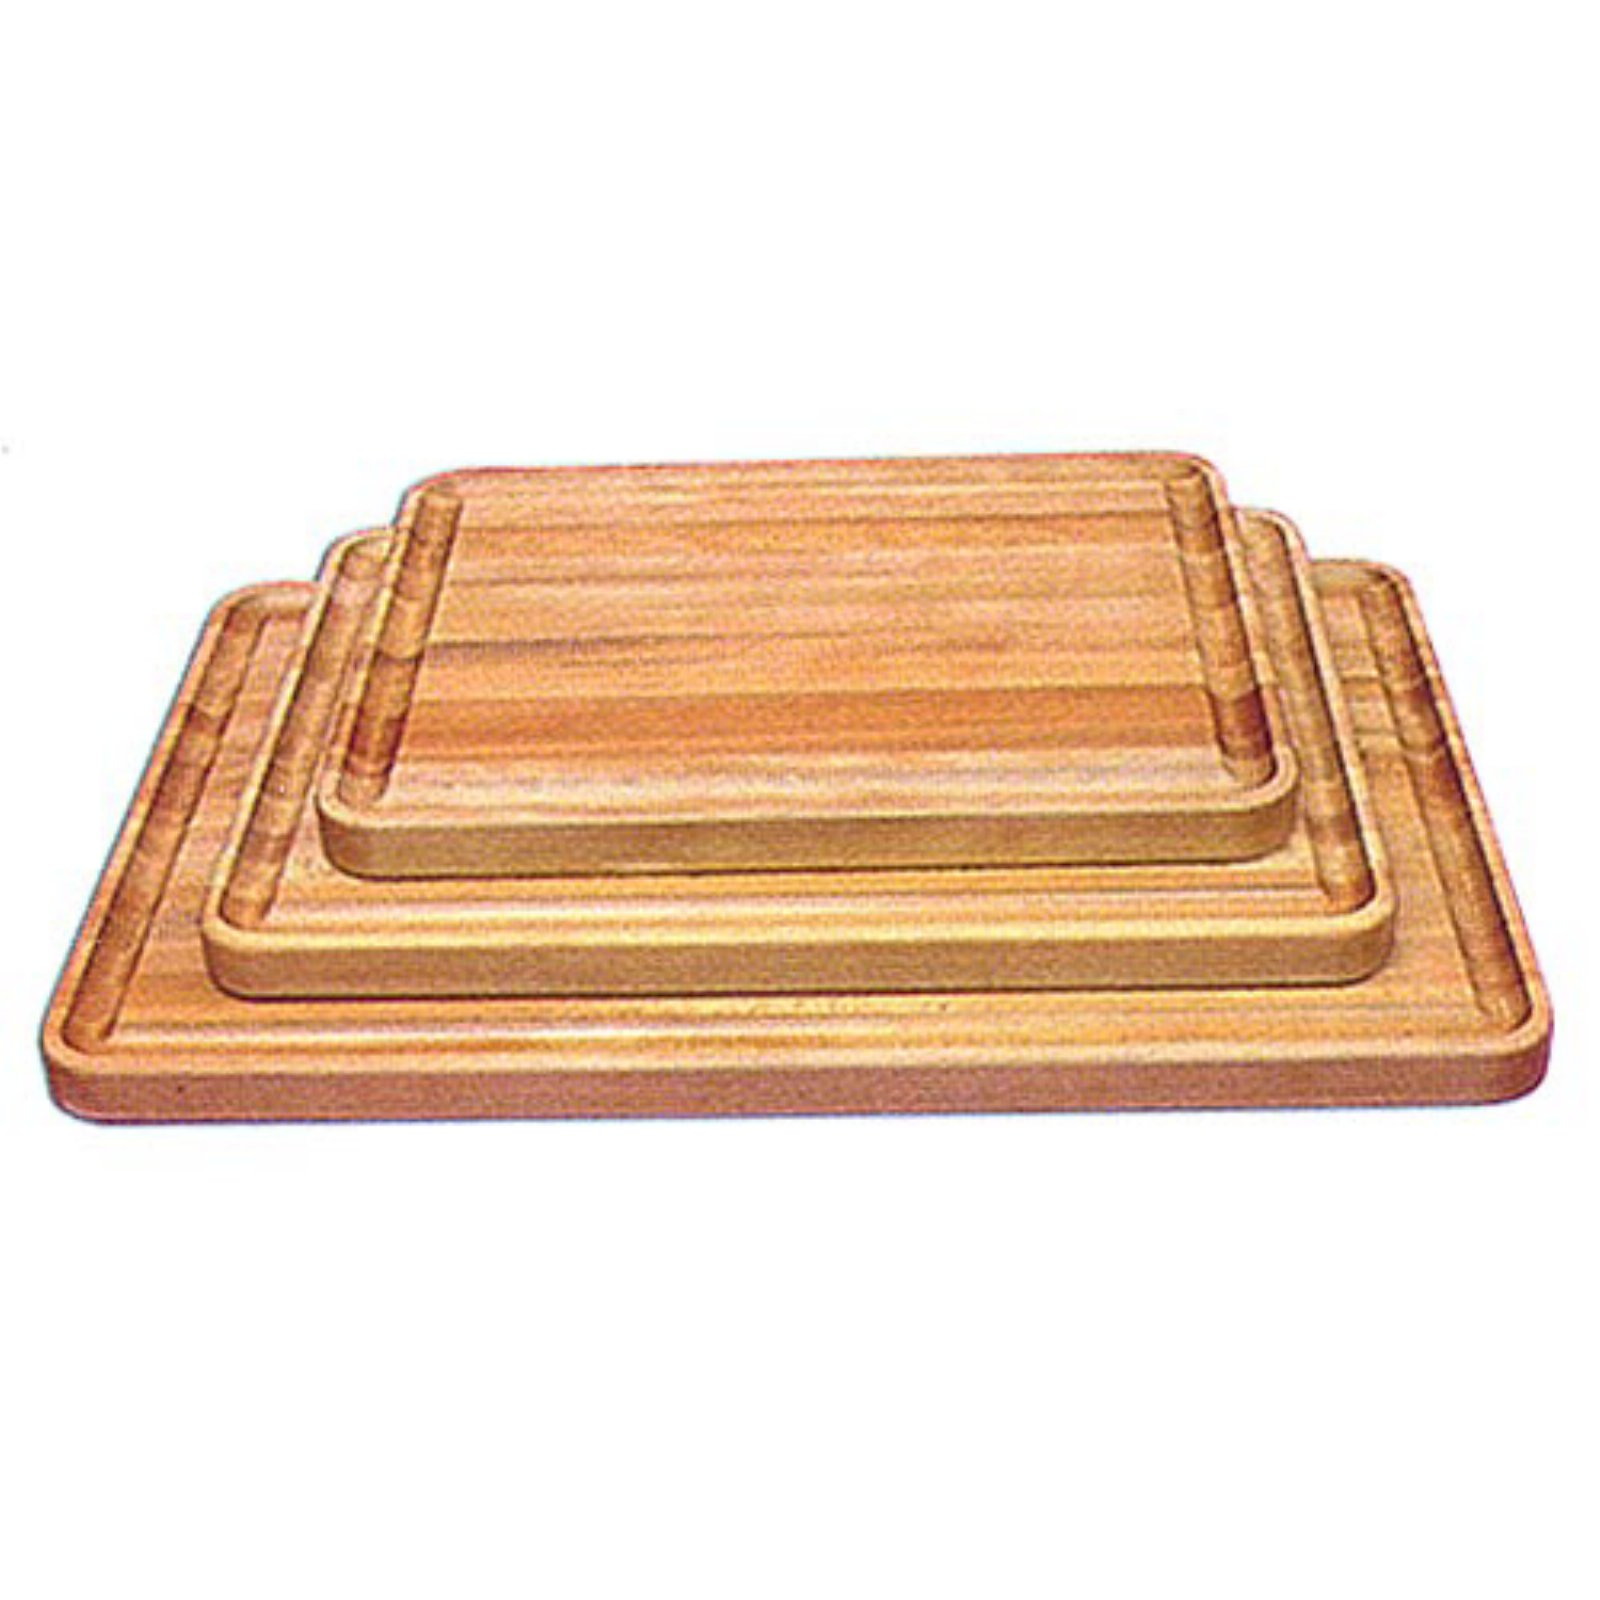 Professional Cutting Board with Juice Groove